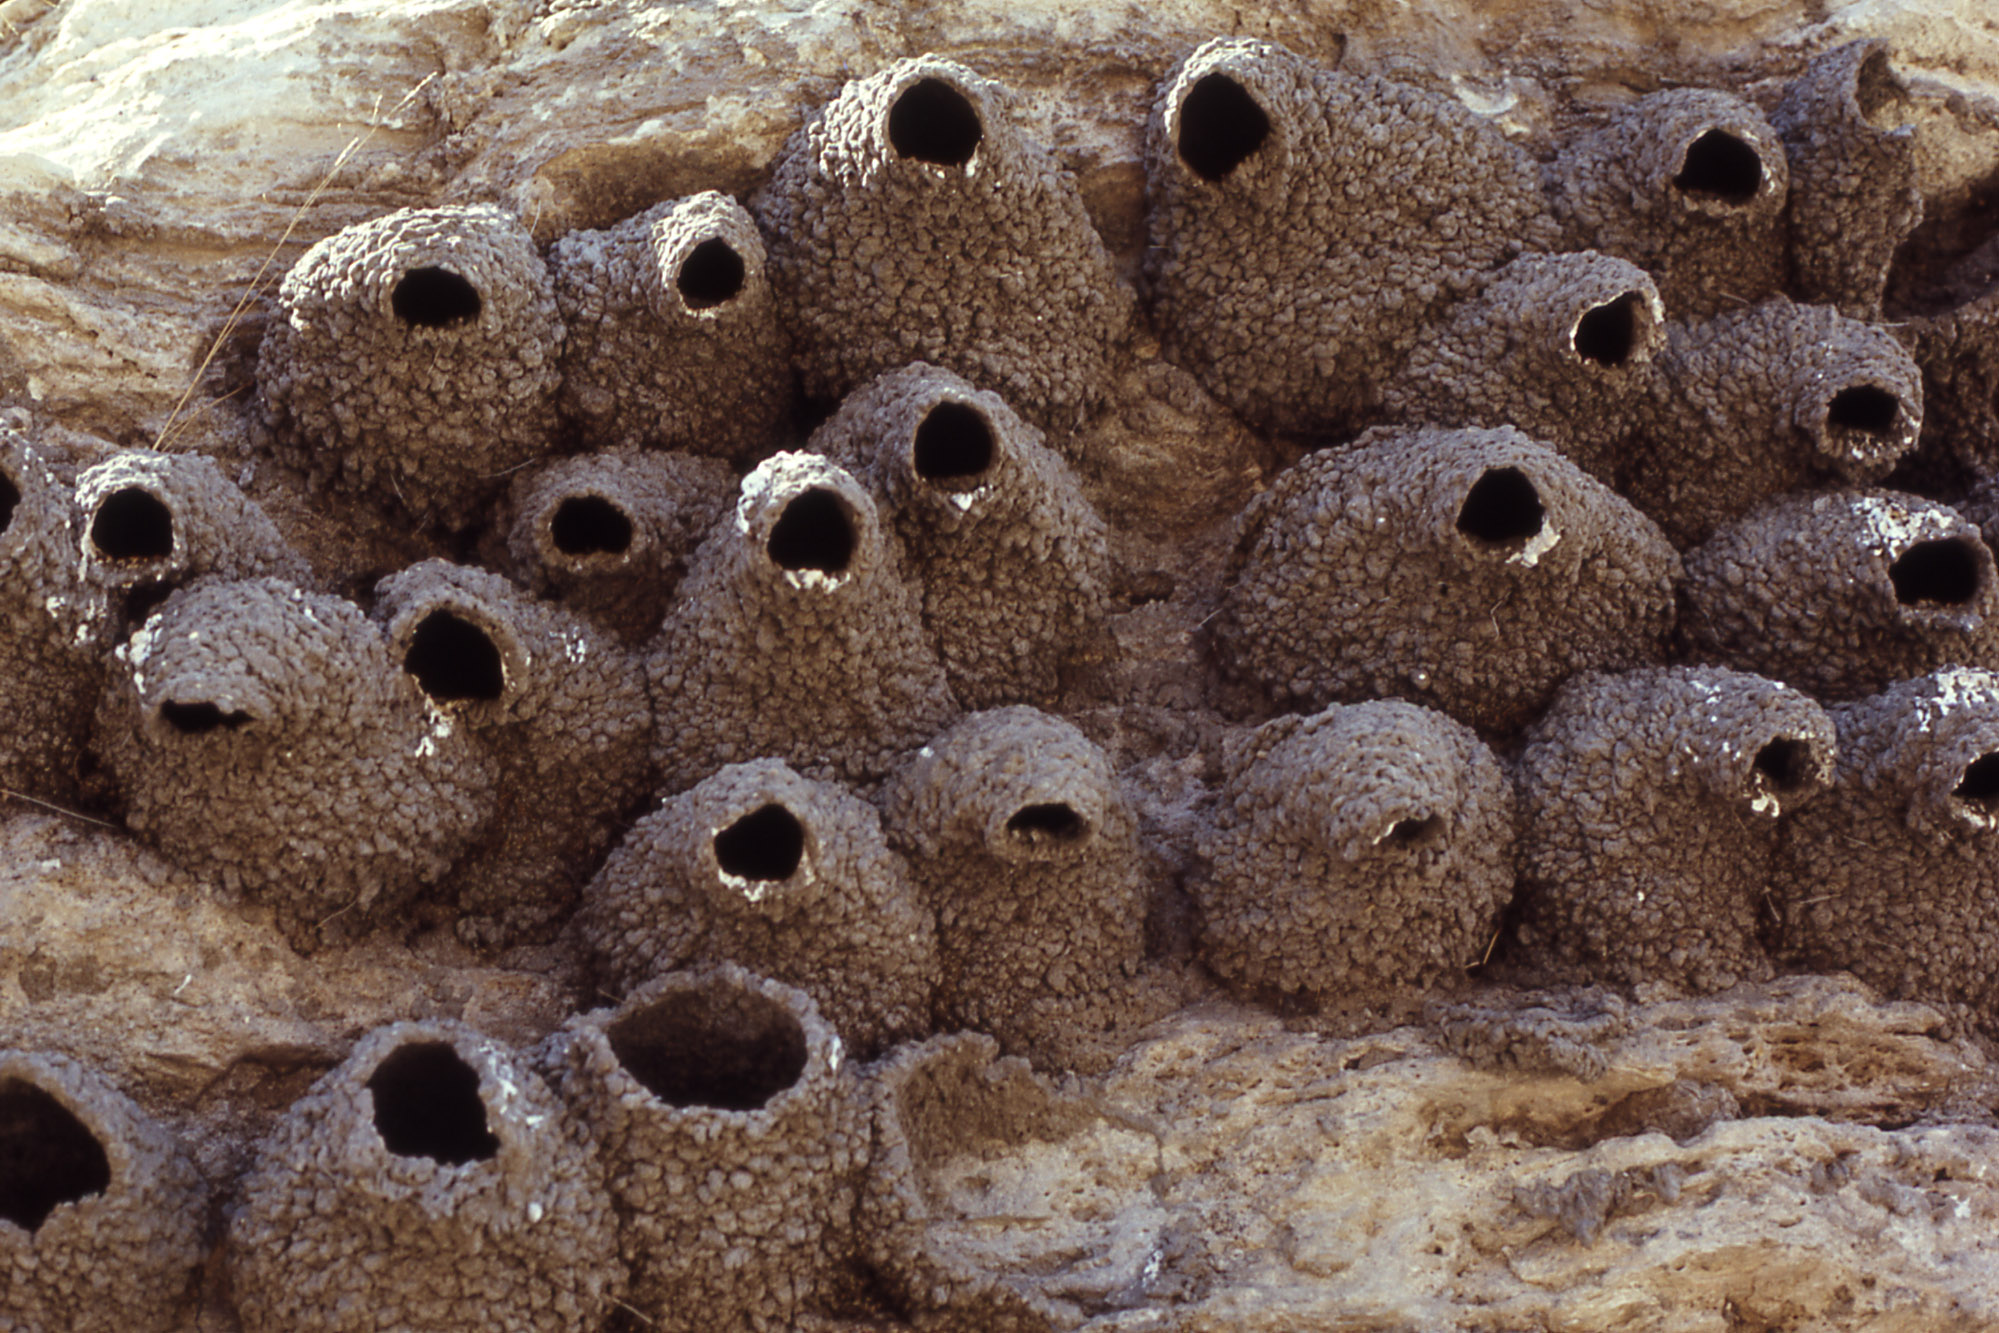 cliff swallow nests photographer unknown 1972